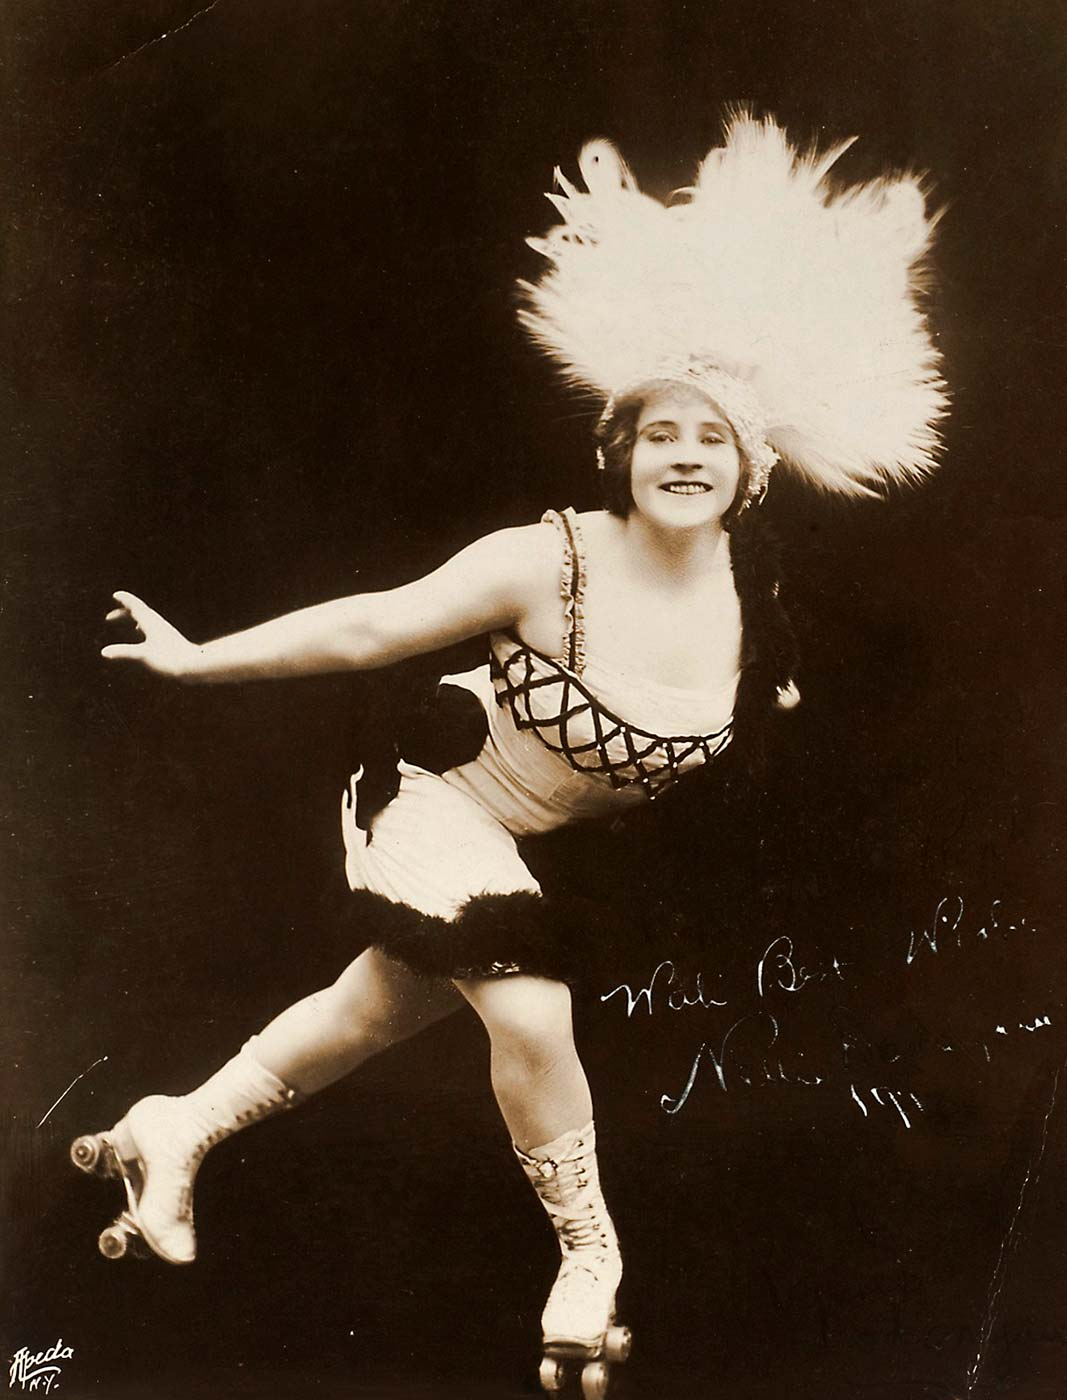 A black and white photo of Nellie Donegan on rollerskates.